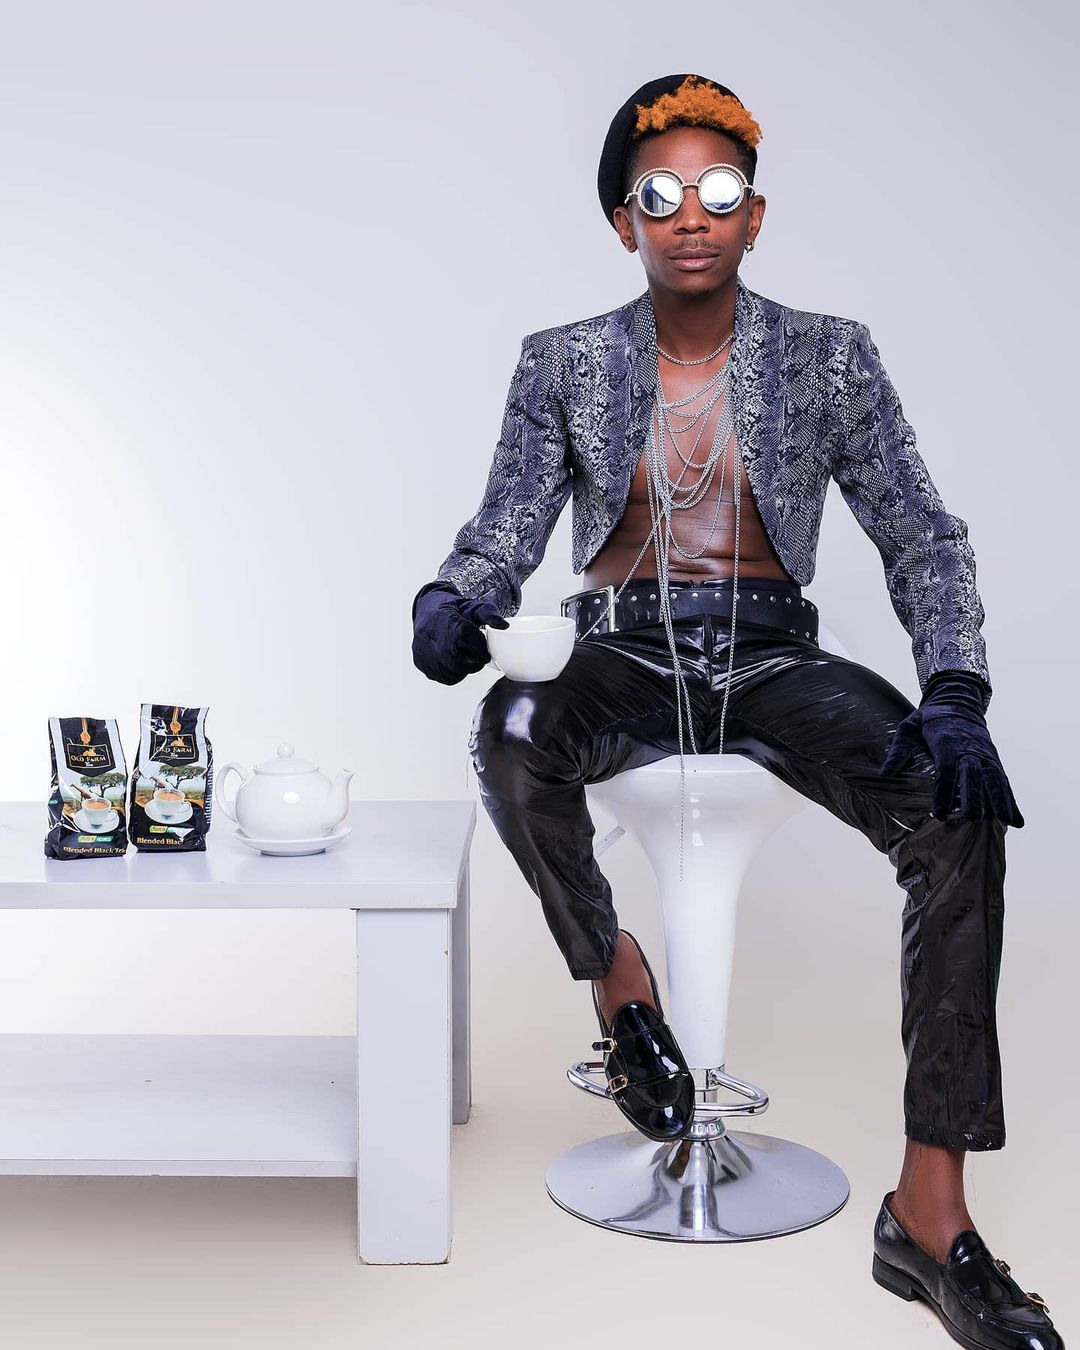 Eric Omondi in his new outfits